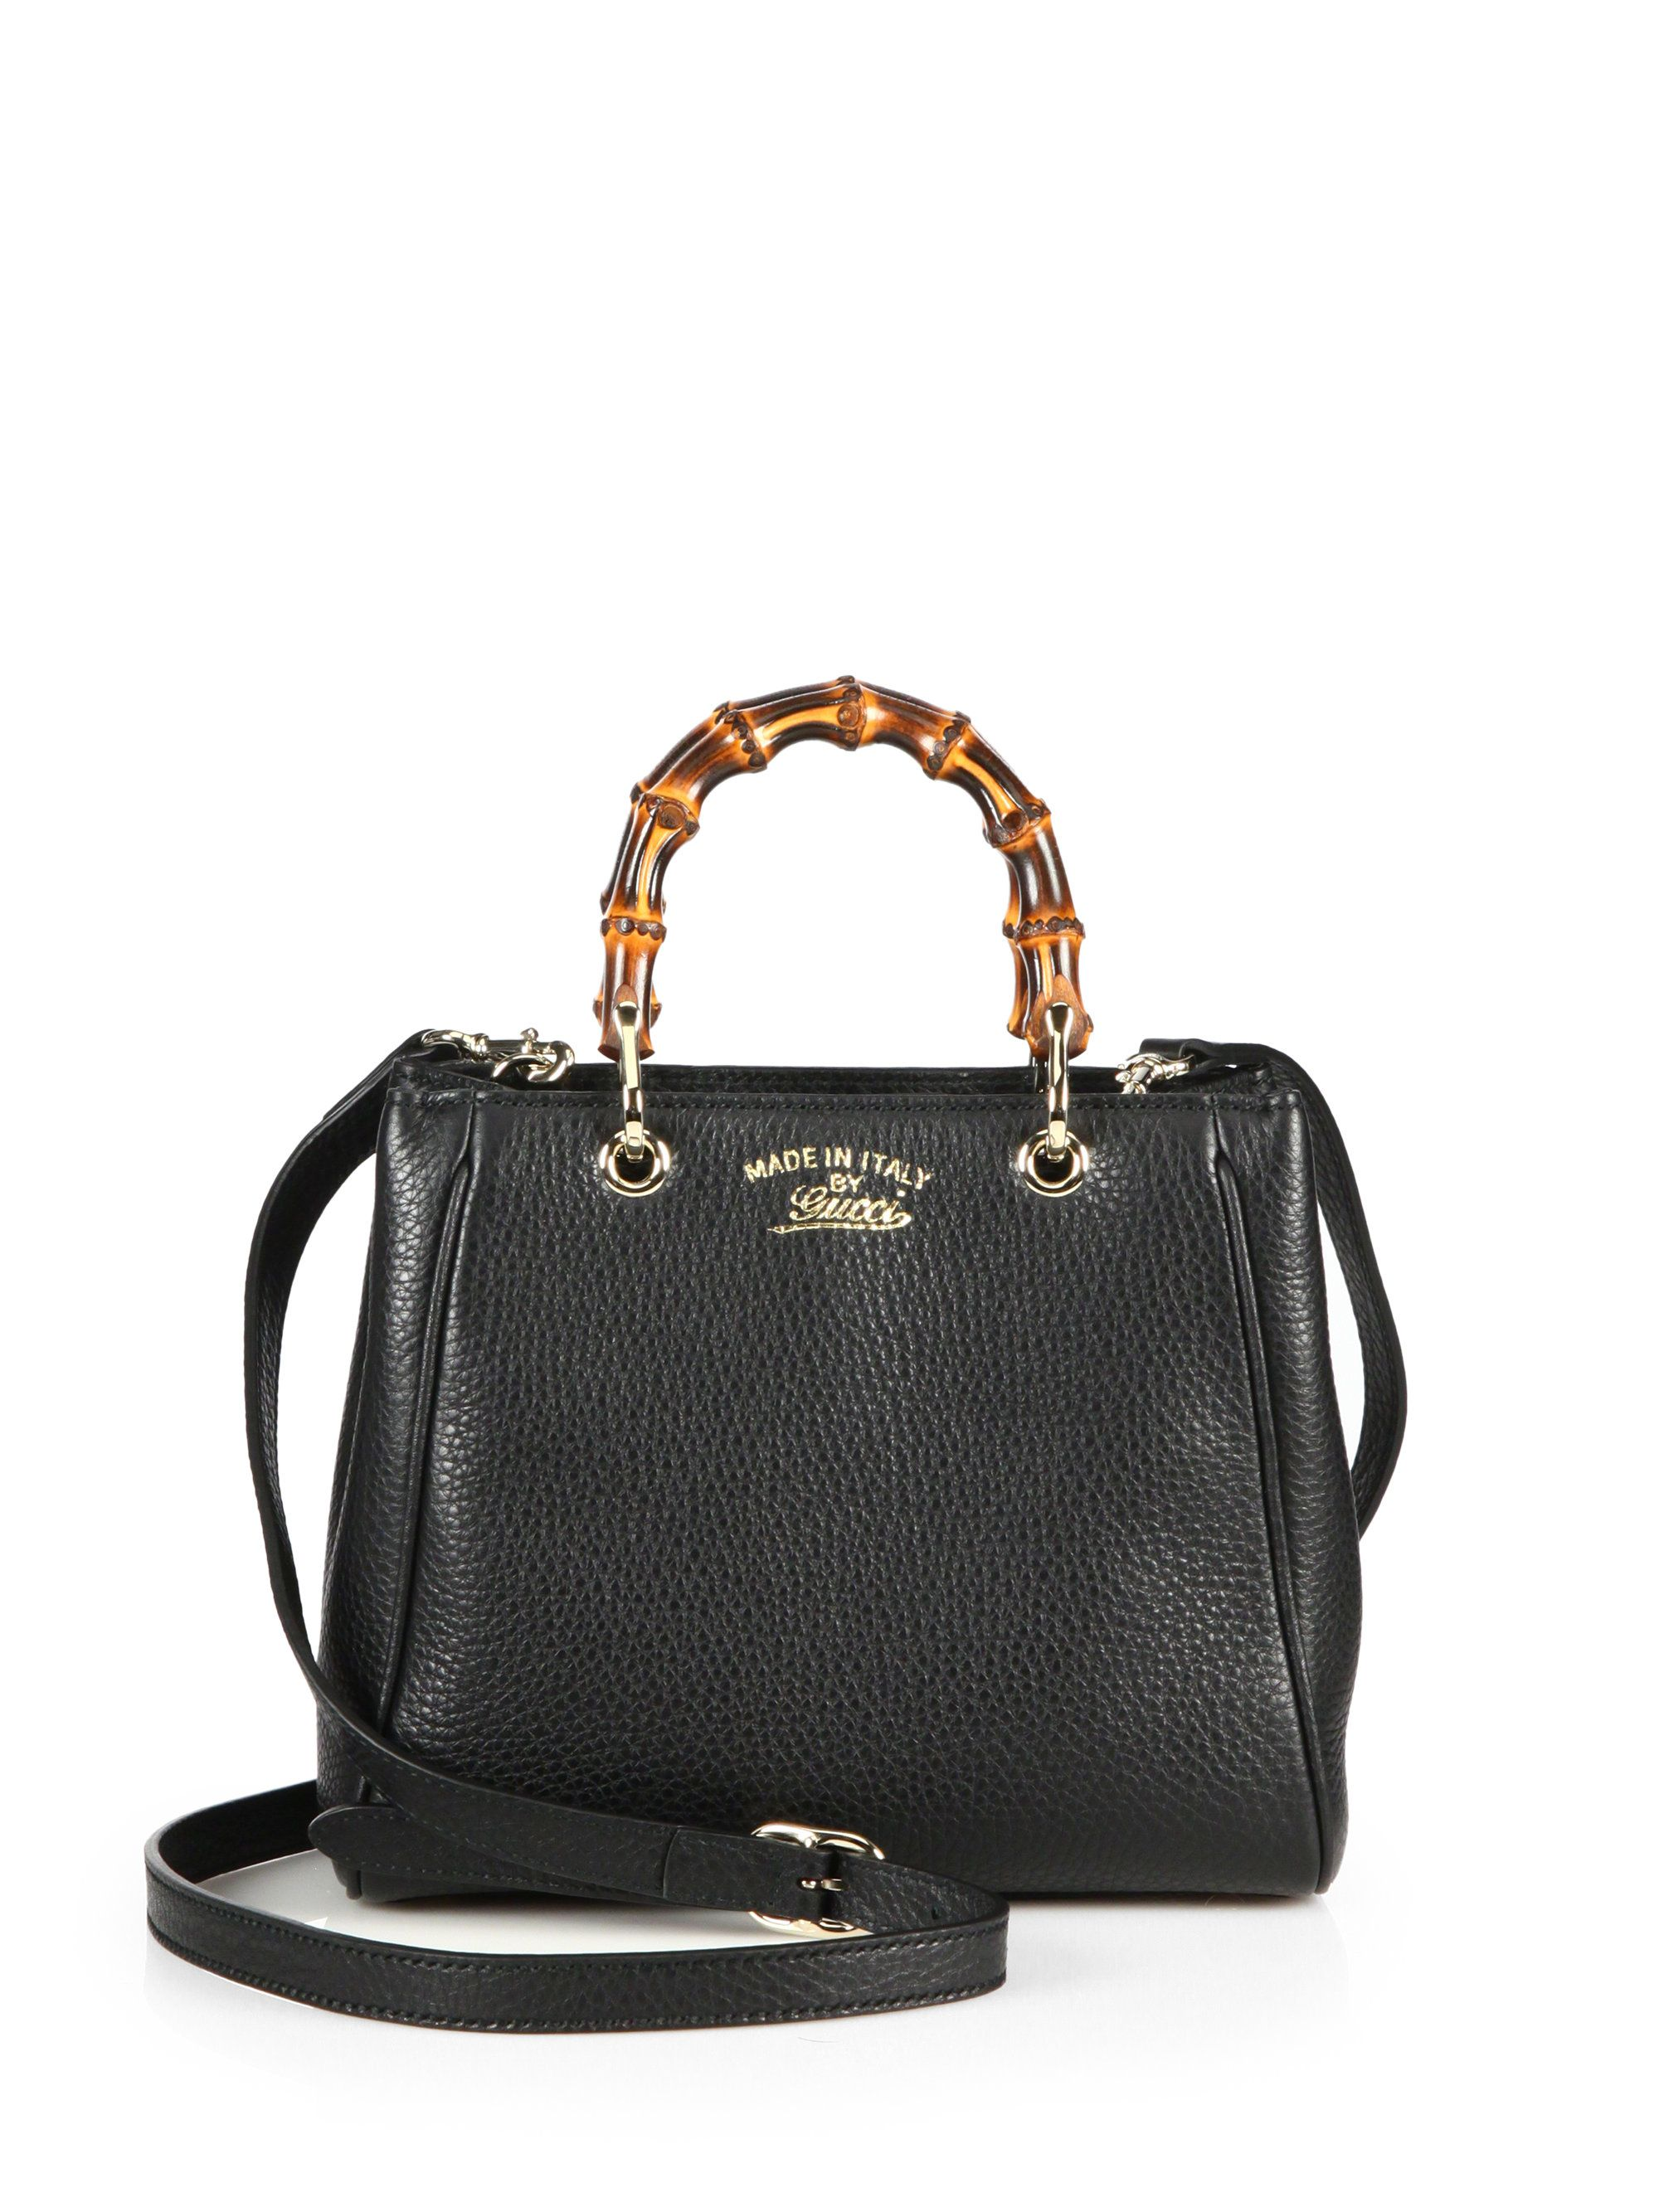 3ae431e7e955 Gucci Bamboo Shopper Mini Leather Top Handle Bag in Black (NERO-BLACK)